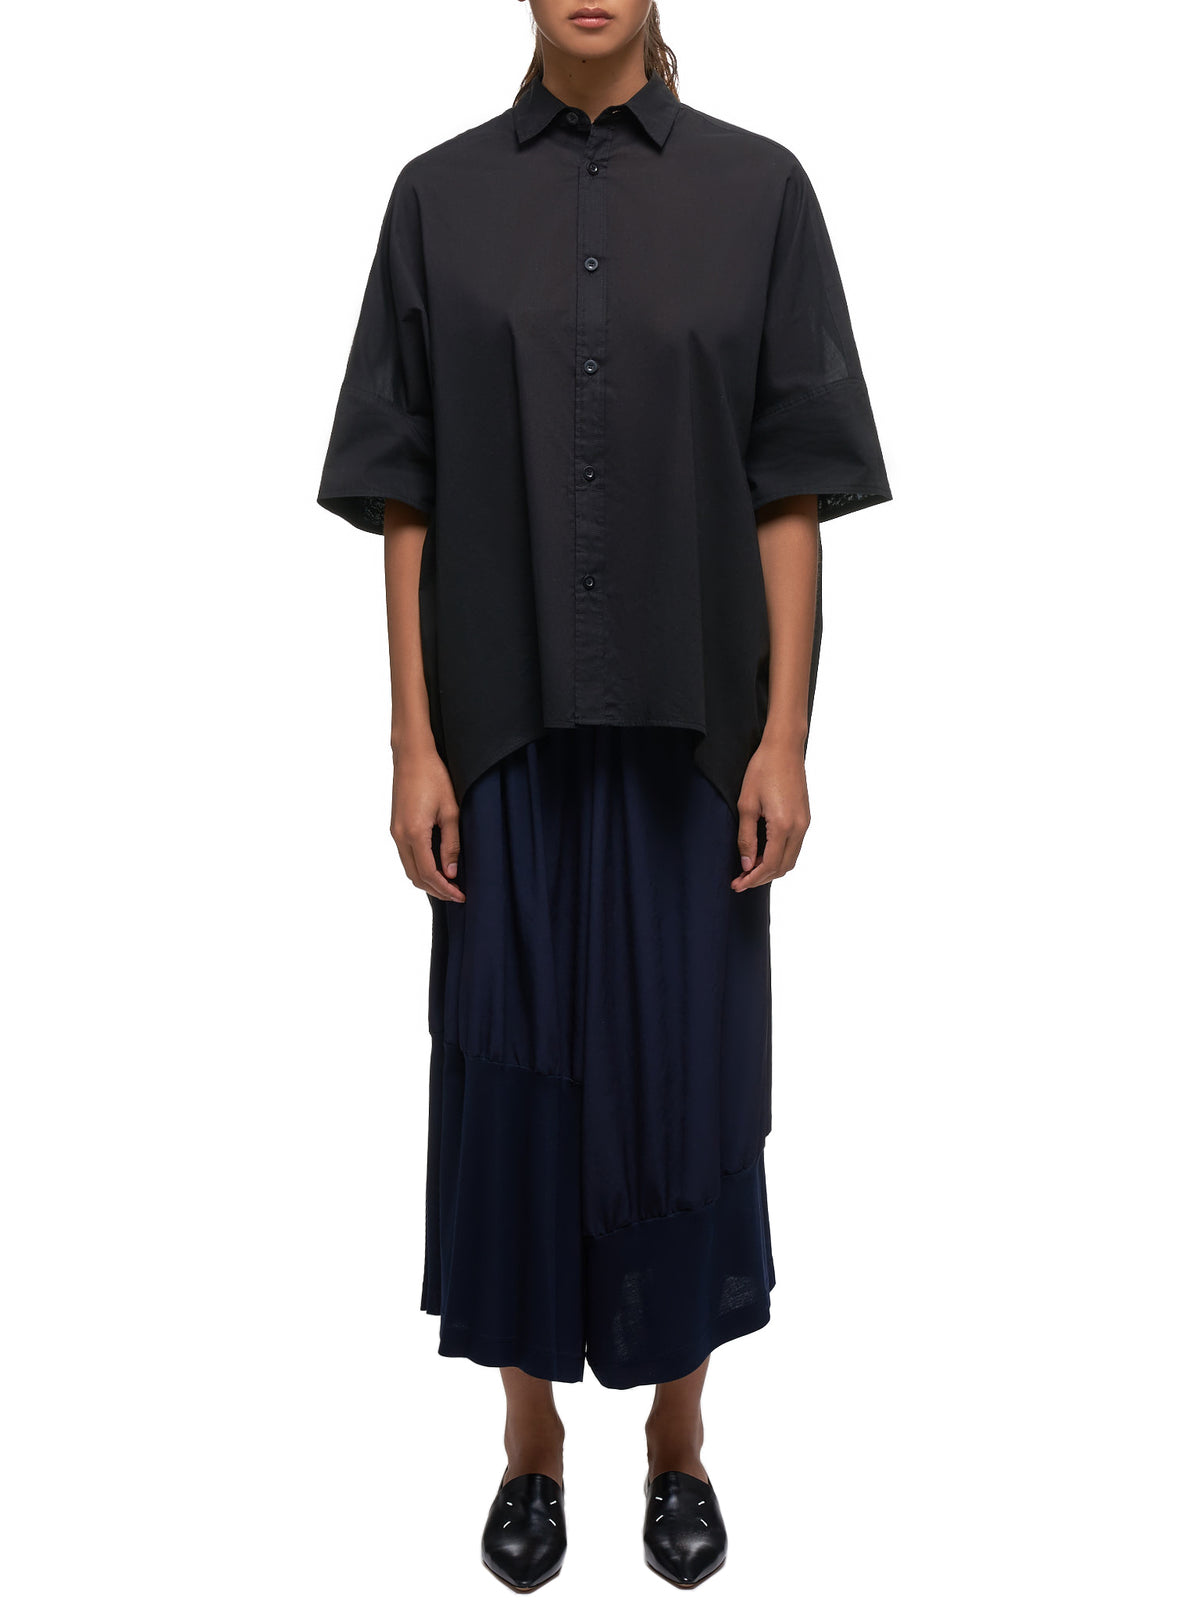 Oversized Short-Sleeve Shirt (YS-B41-040-BLACK)